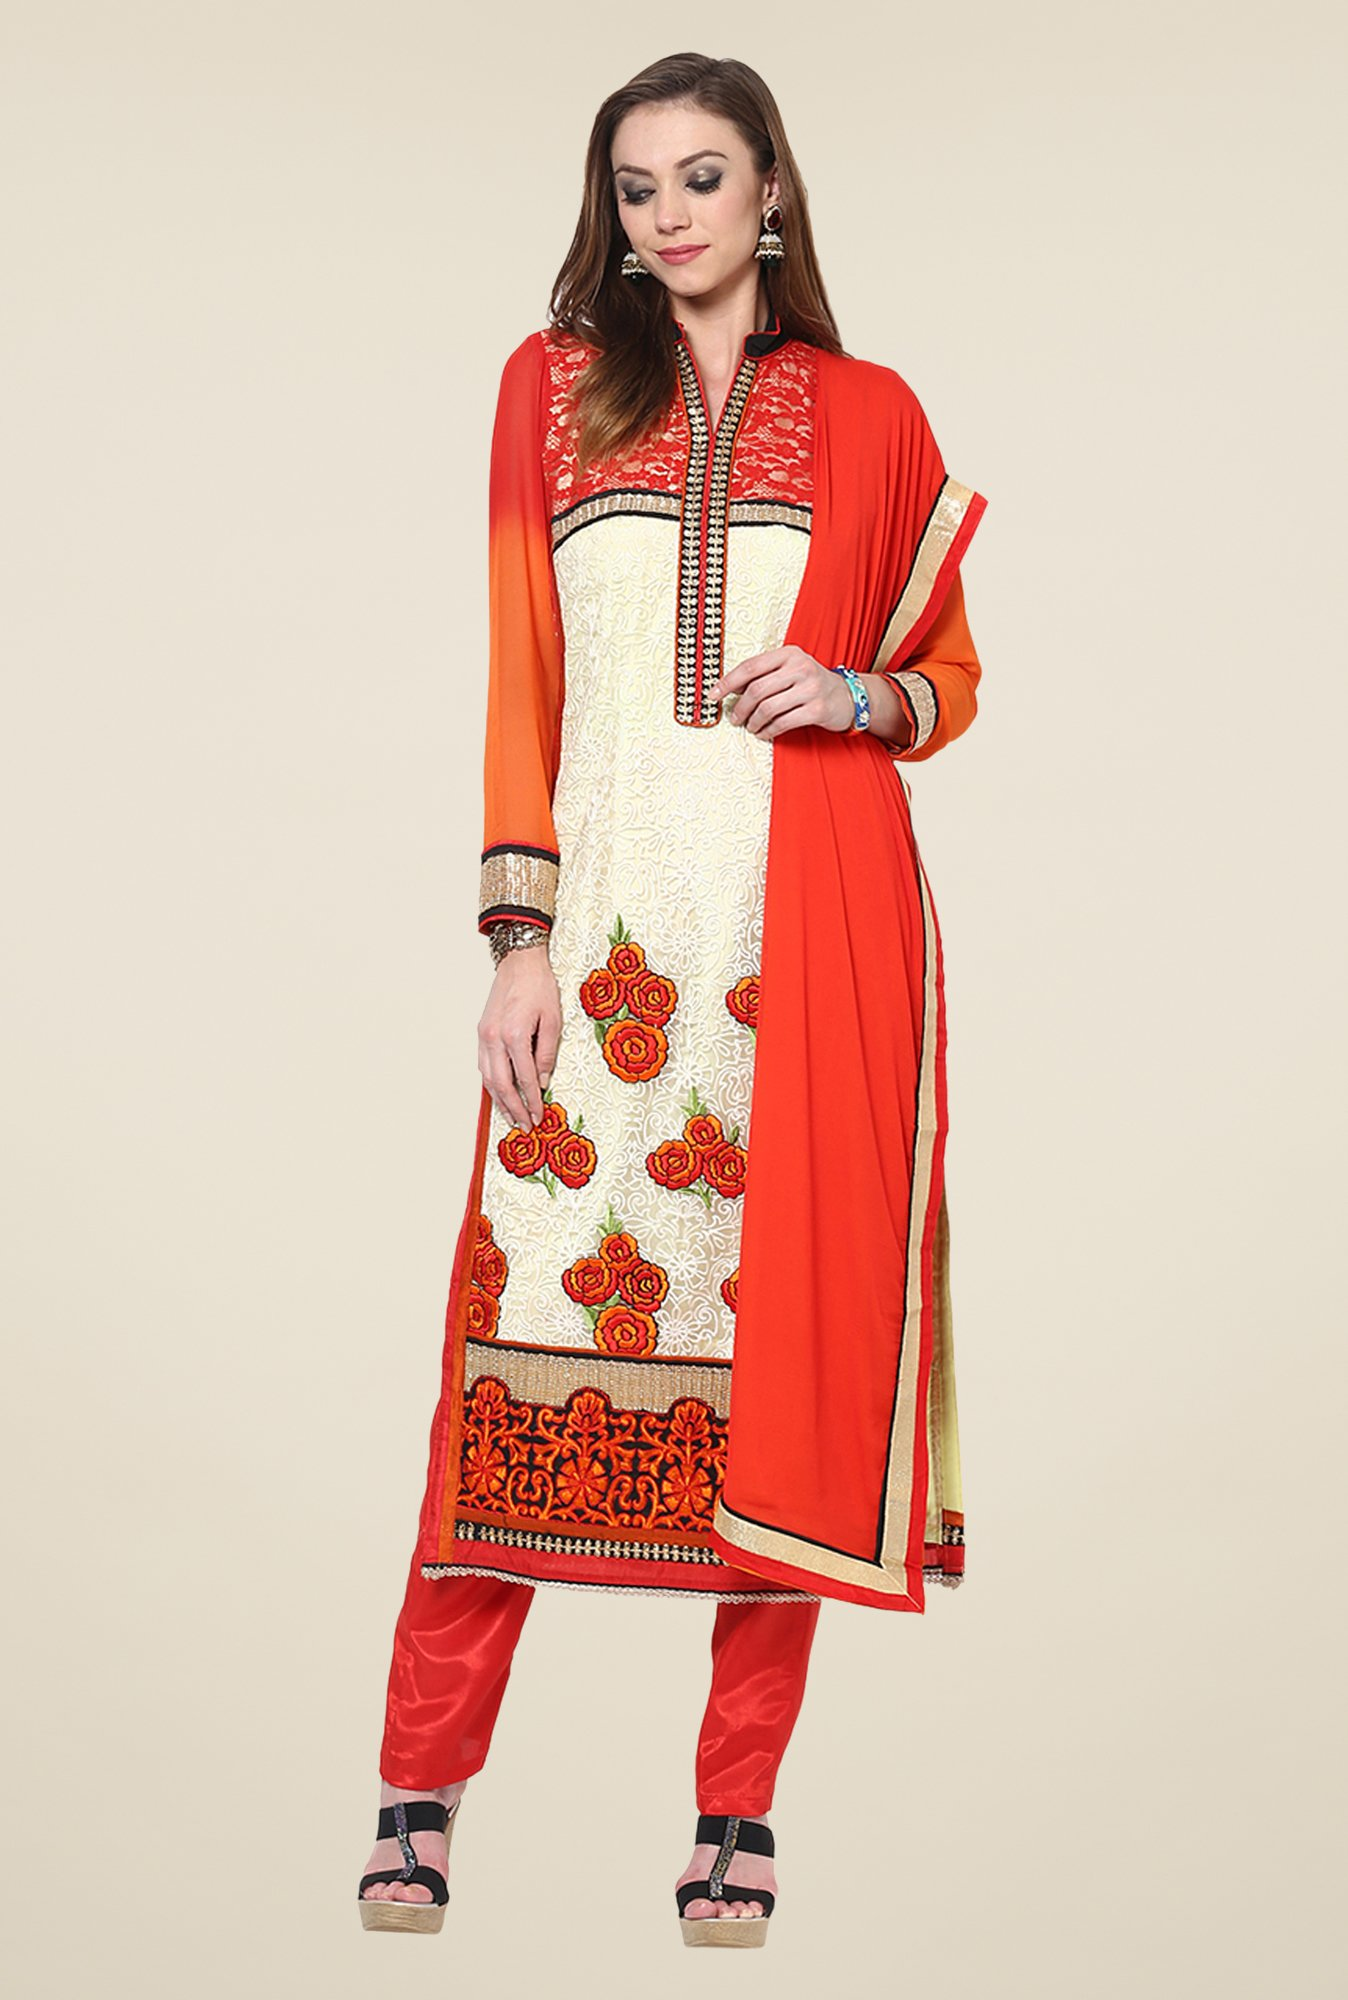 Yepme Vivaana Beige & Red Unstitched Suit Set